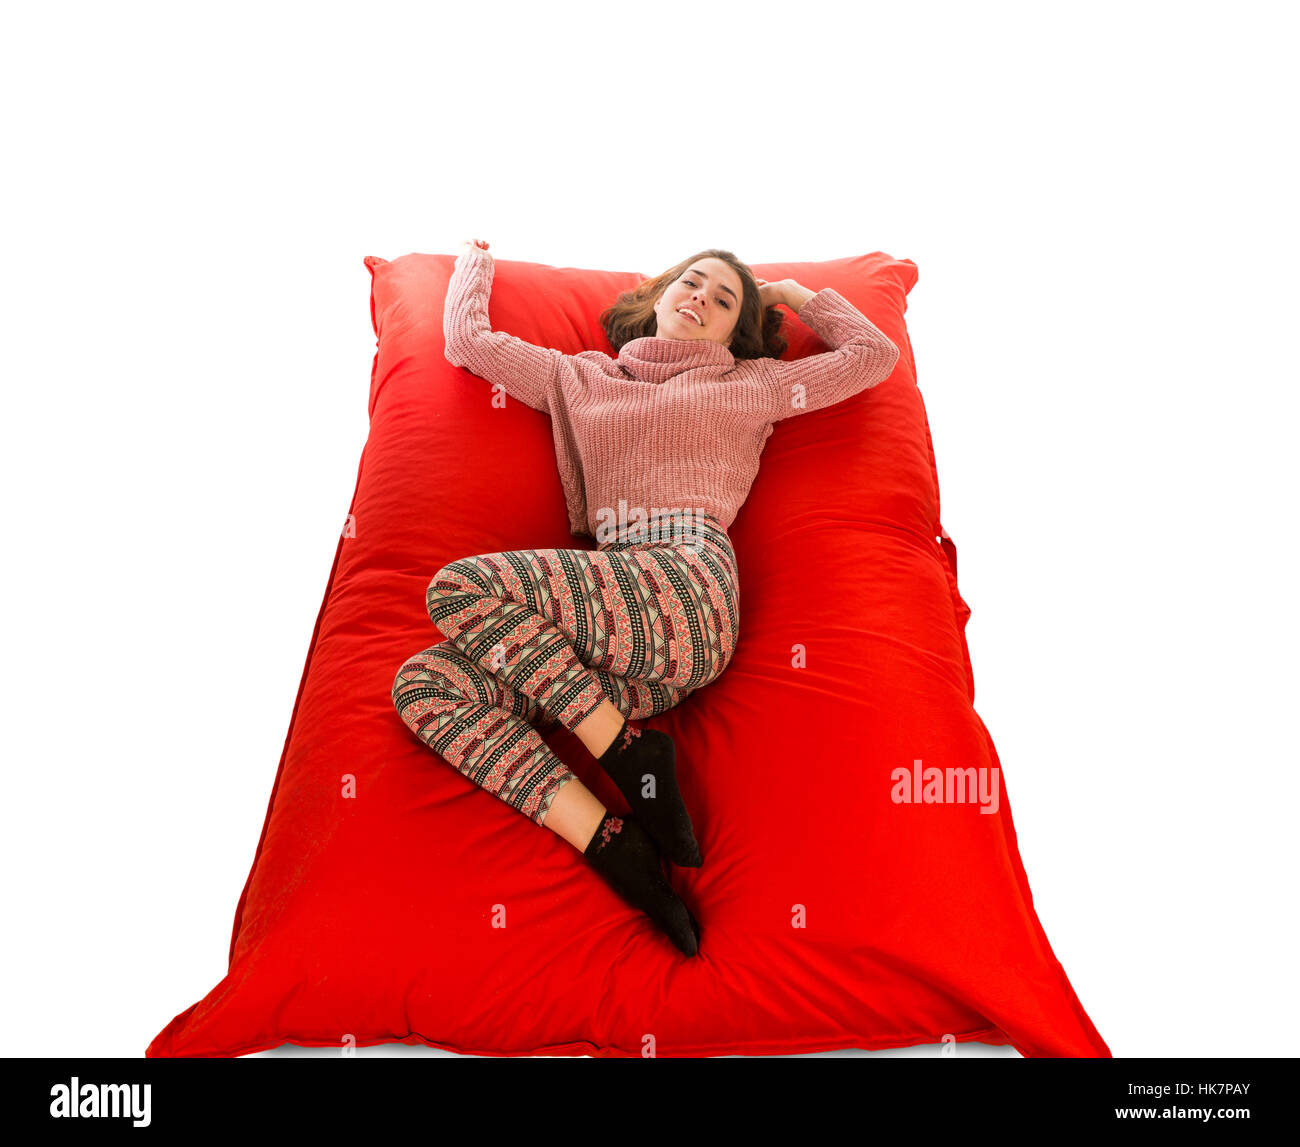 Attractive woman lying on red square shaped beanbag sofa for living room or other room isolated on white background - Stock Image